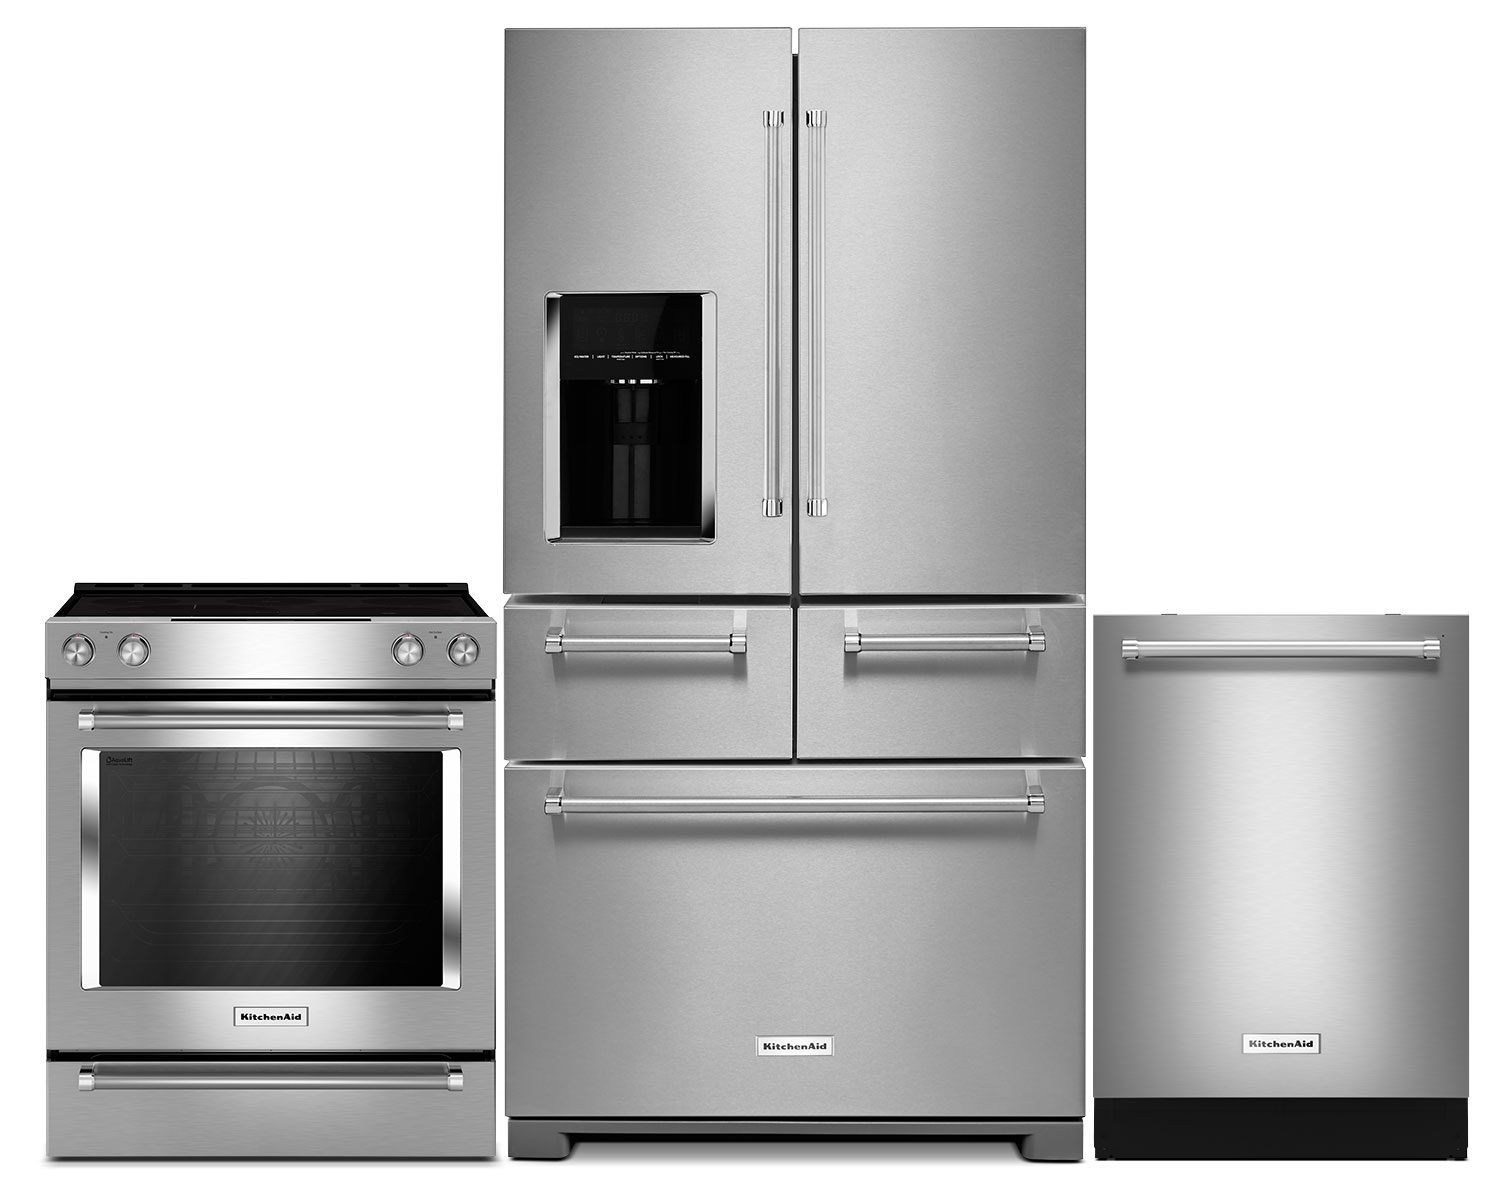 Cooking Products - KitchenAid 25.8 Cu. Ft. 5-Door Refrigerator, 6.4 Cu. Ft. Range and Dishwasher – Stainless Steel